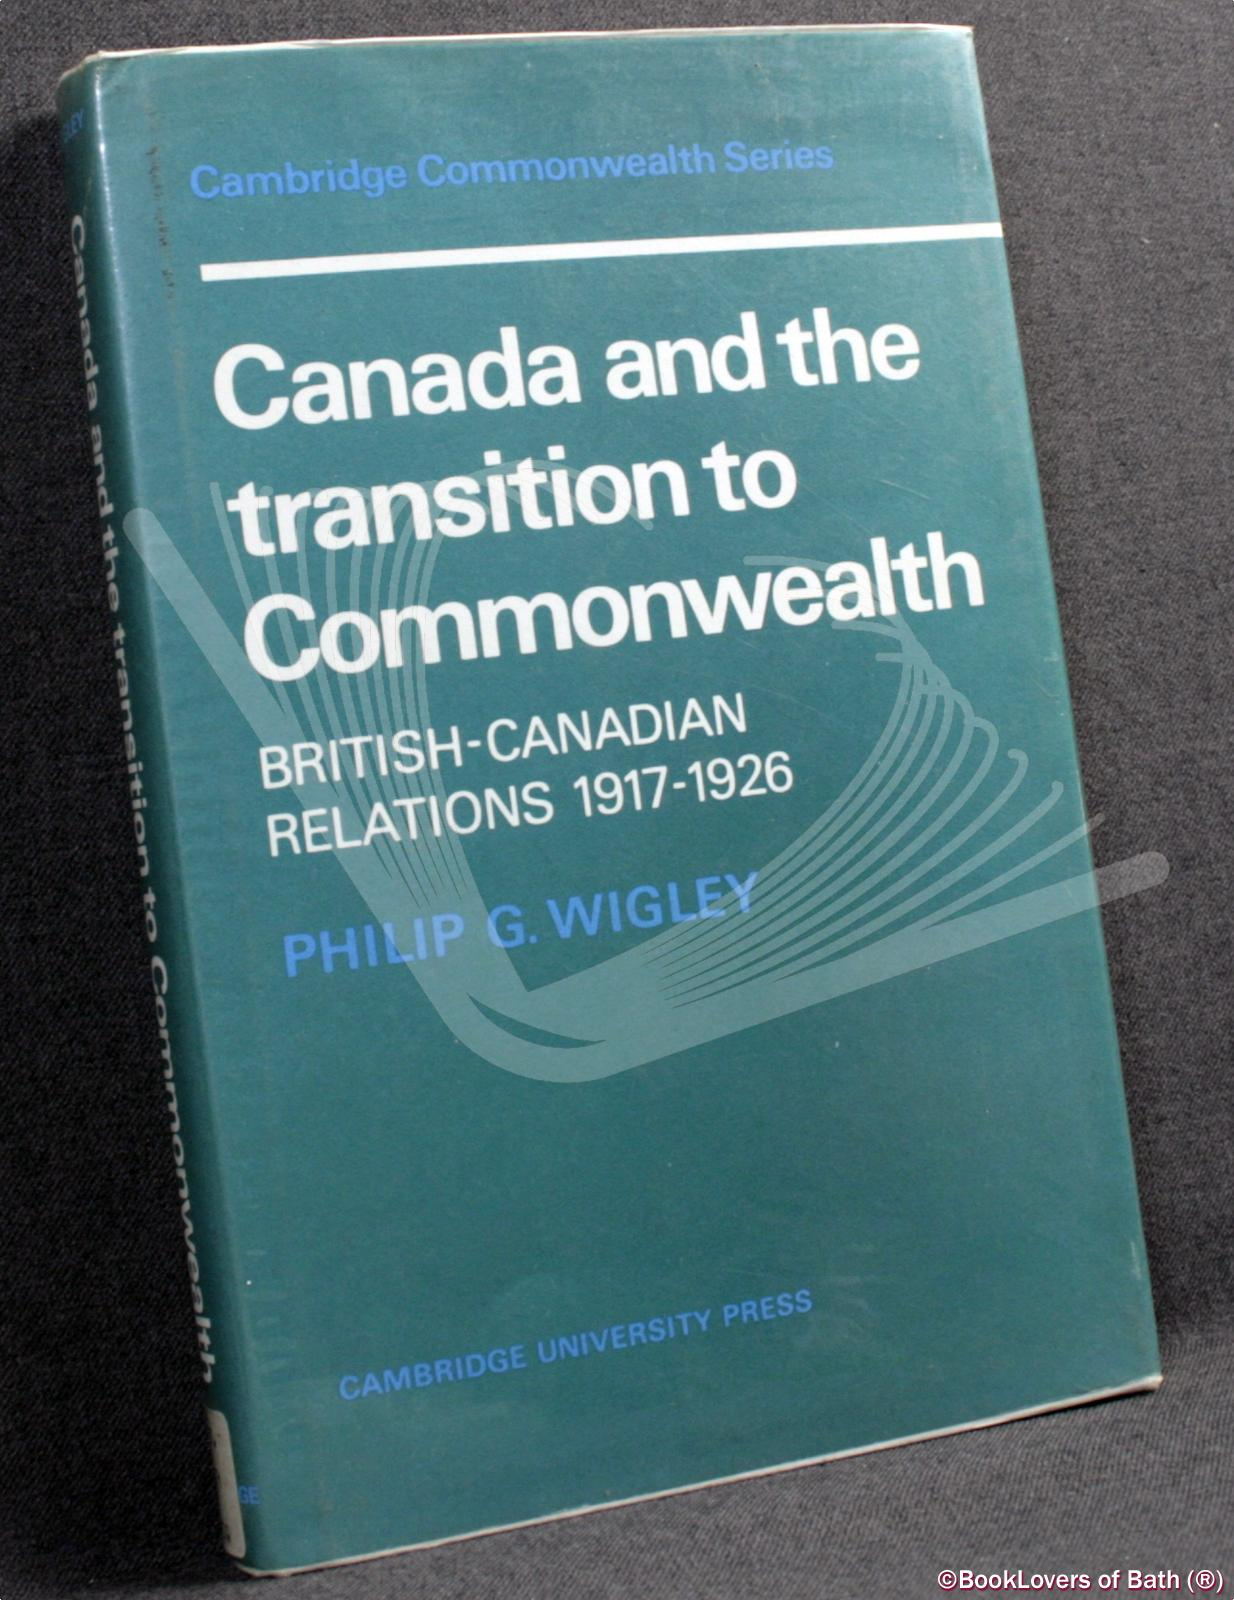 Canada and the Transition to Commonwealth: British-Canadian Relations 1917-1926 - Philip G. Wigley